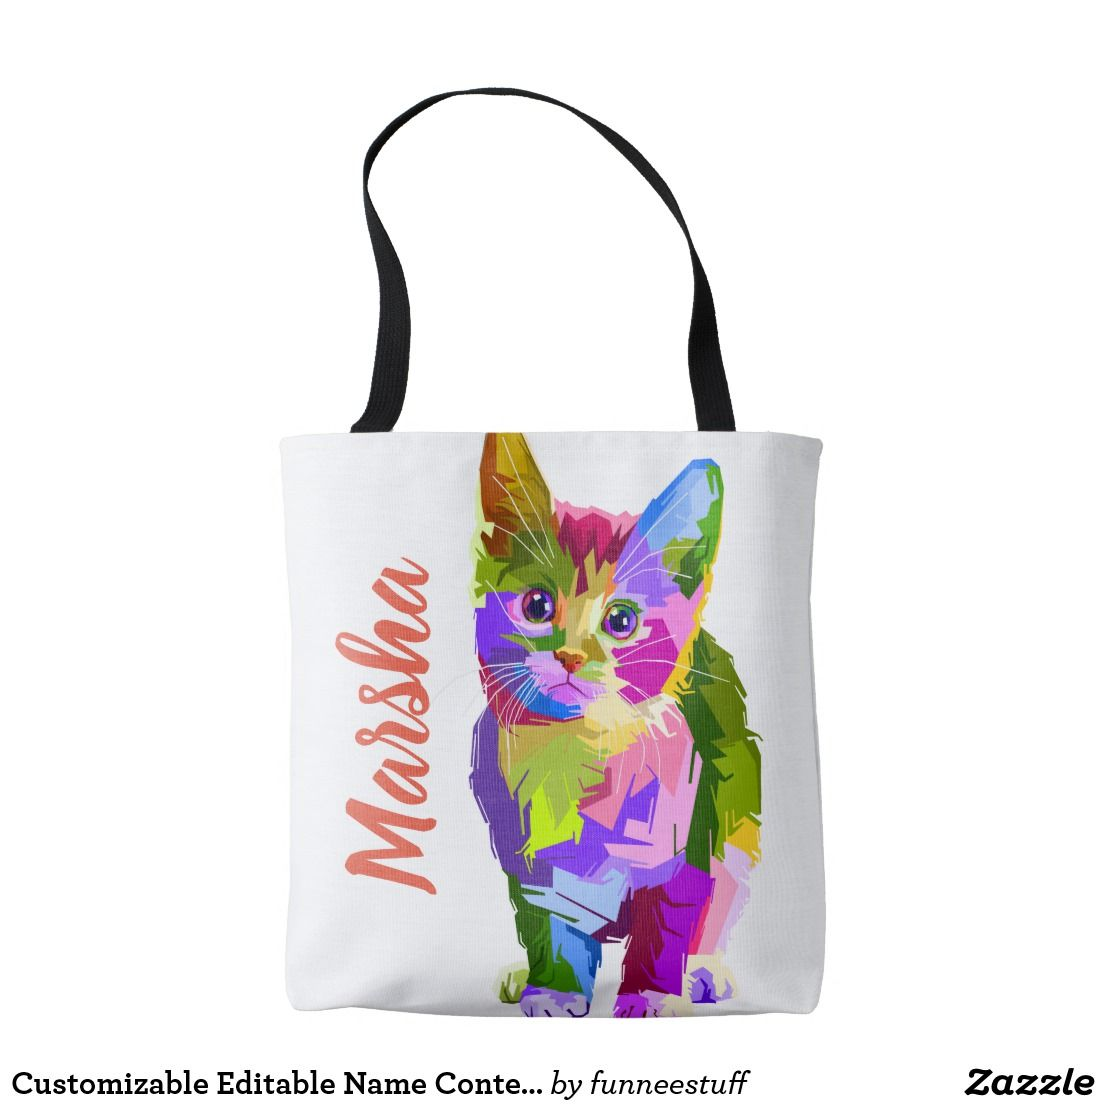 f1fe8d1f5650 Customizable Editable Name Contemporary Artsy Cat Tote Bag